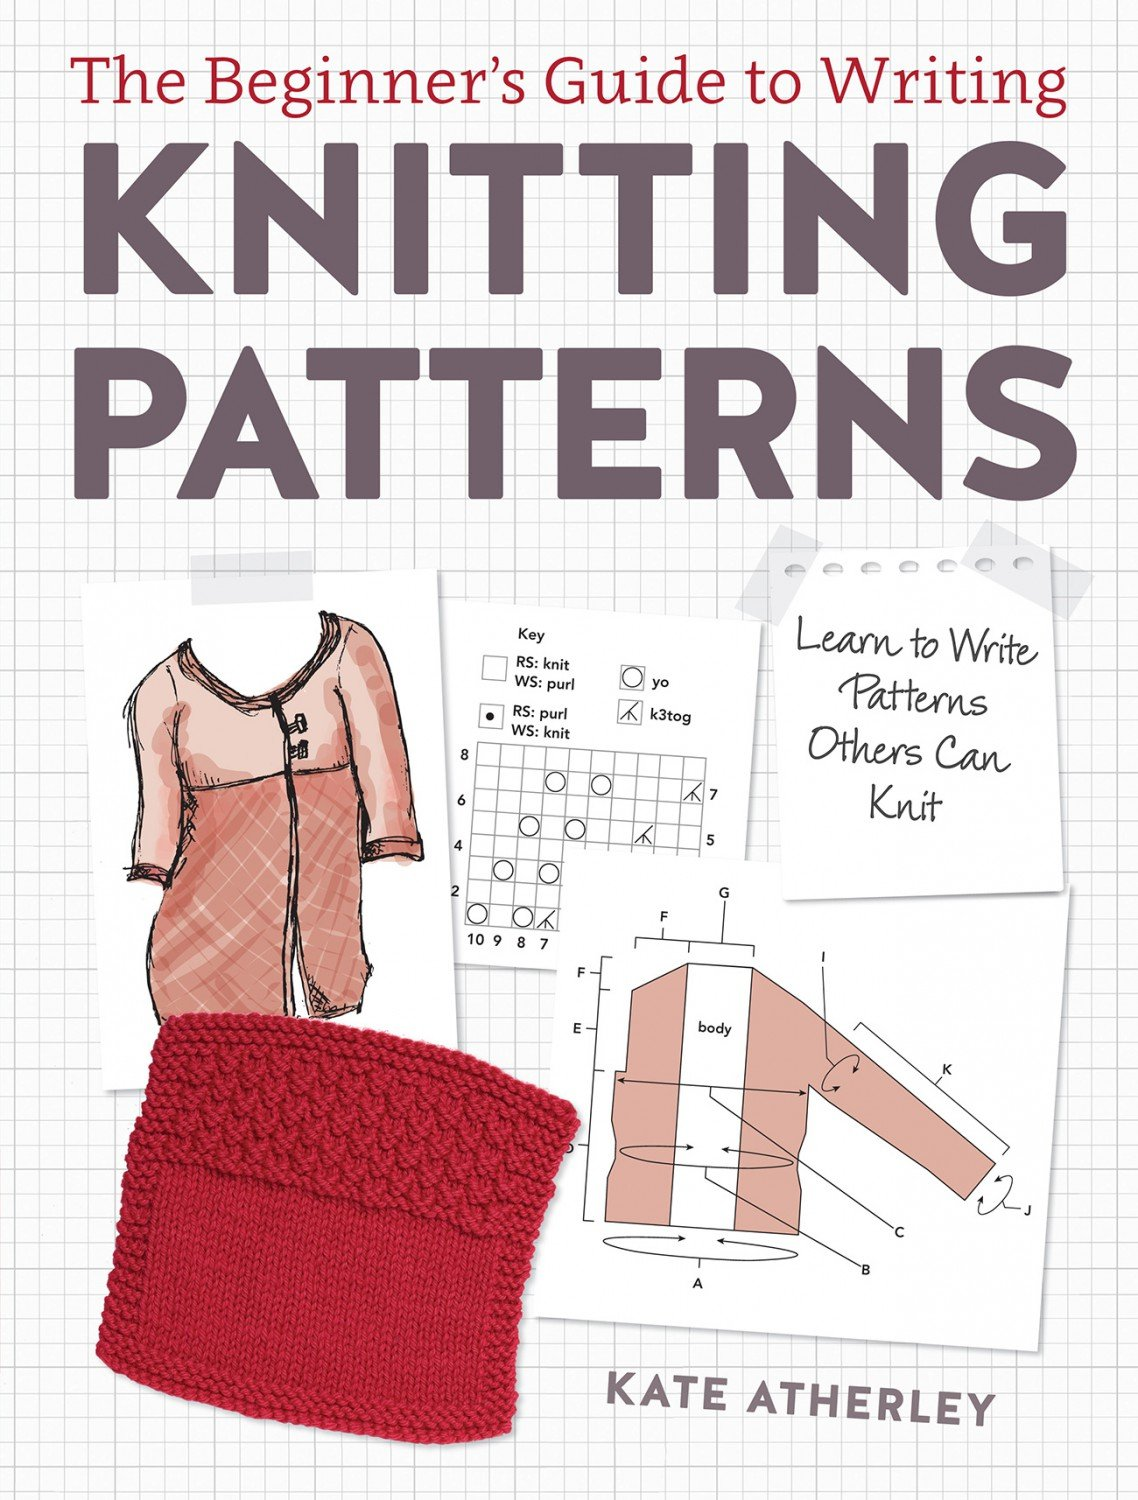 Beginner's Guide to Writing Knitting Patterns by Kate Atherley